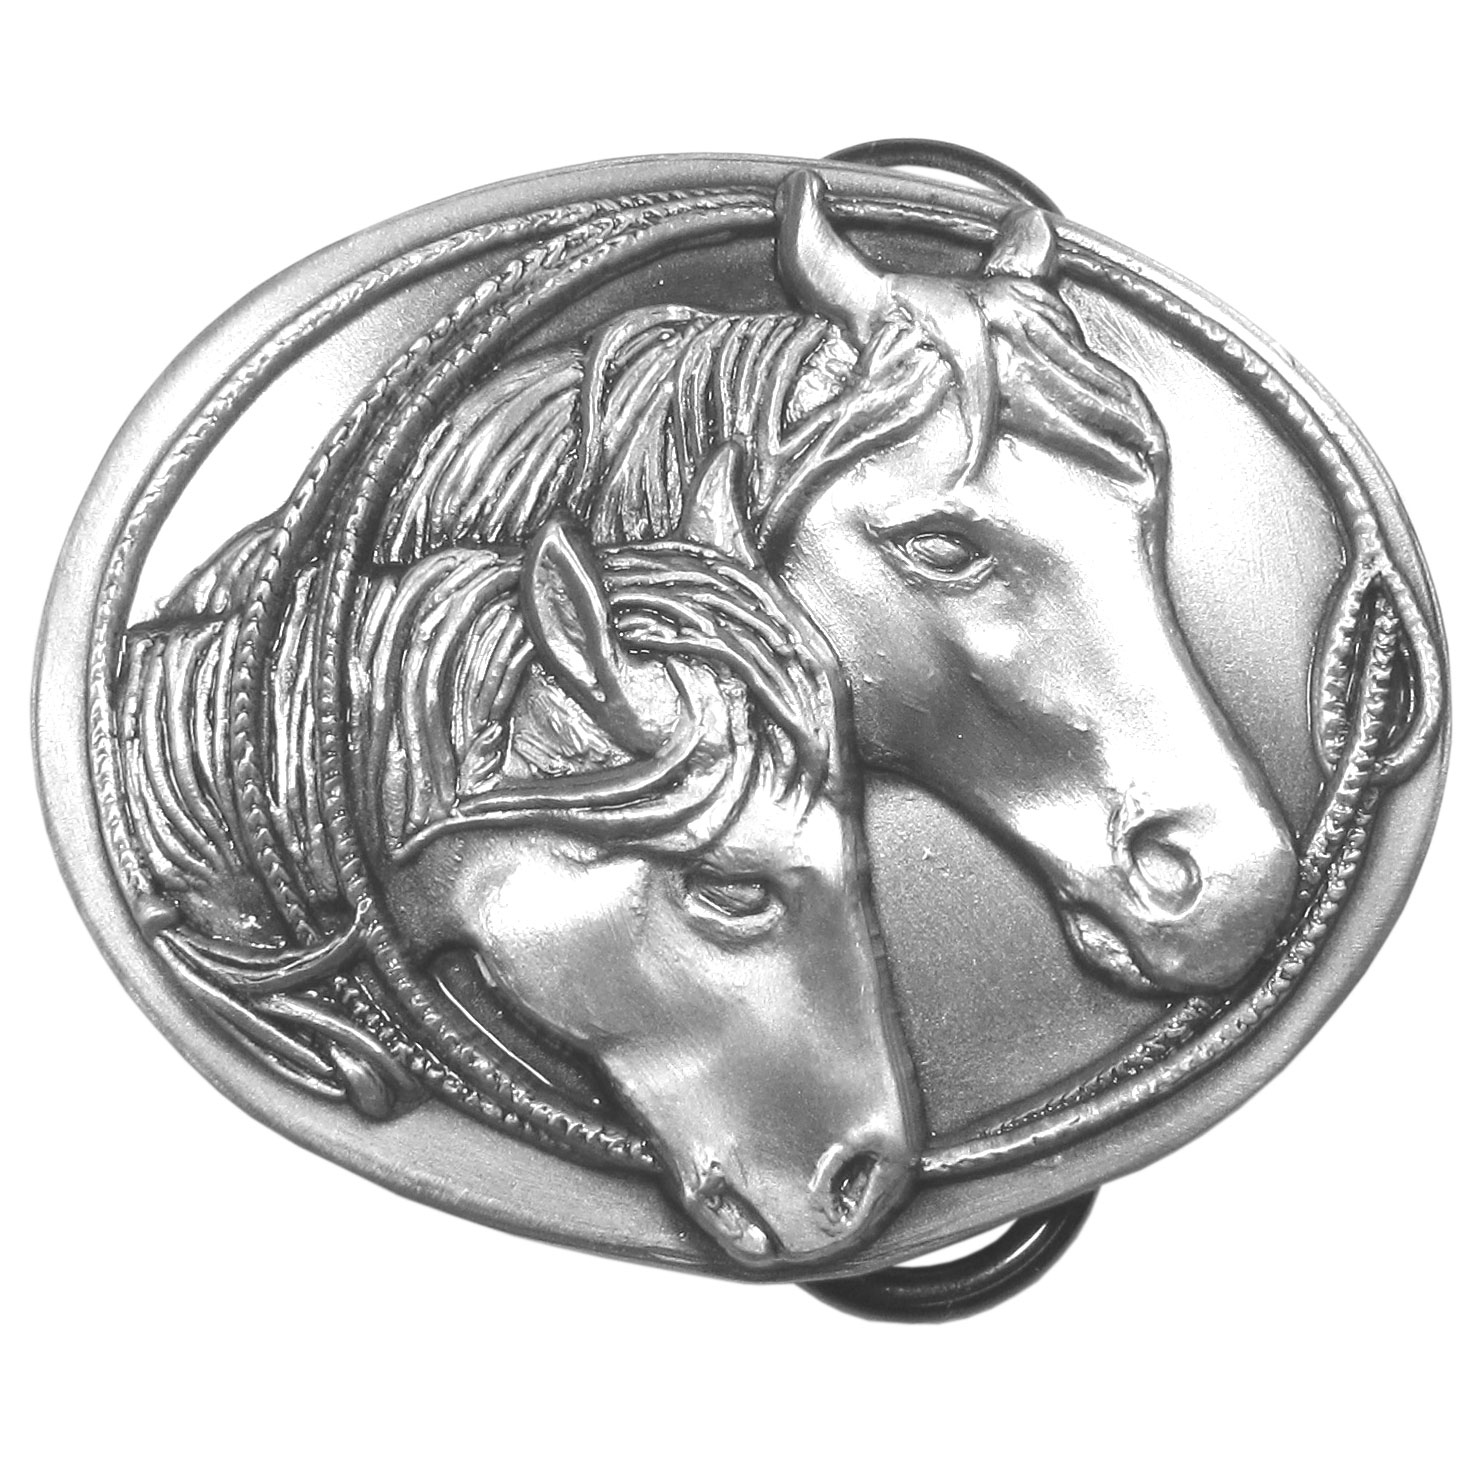 "Horse Antiqued Belt Buckle - This exquistely carved, petite 2-1/4"" buckle features 2 horse heads and a lasso. This buckle is made of fully cast metal with a standard bale that fits up to 2"" belts. Siskiyou's unique buckle designs often become collectors items and are unequaled with the best craftsmanship."